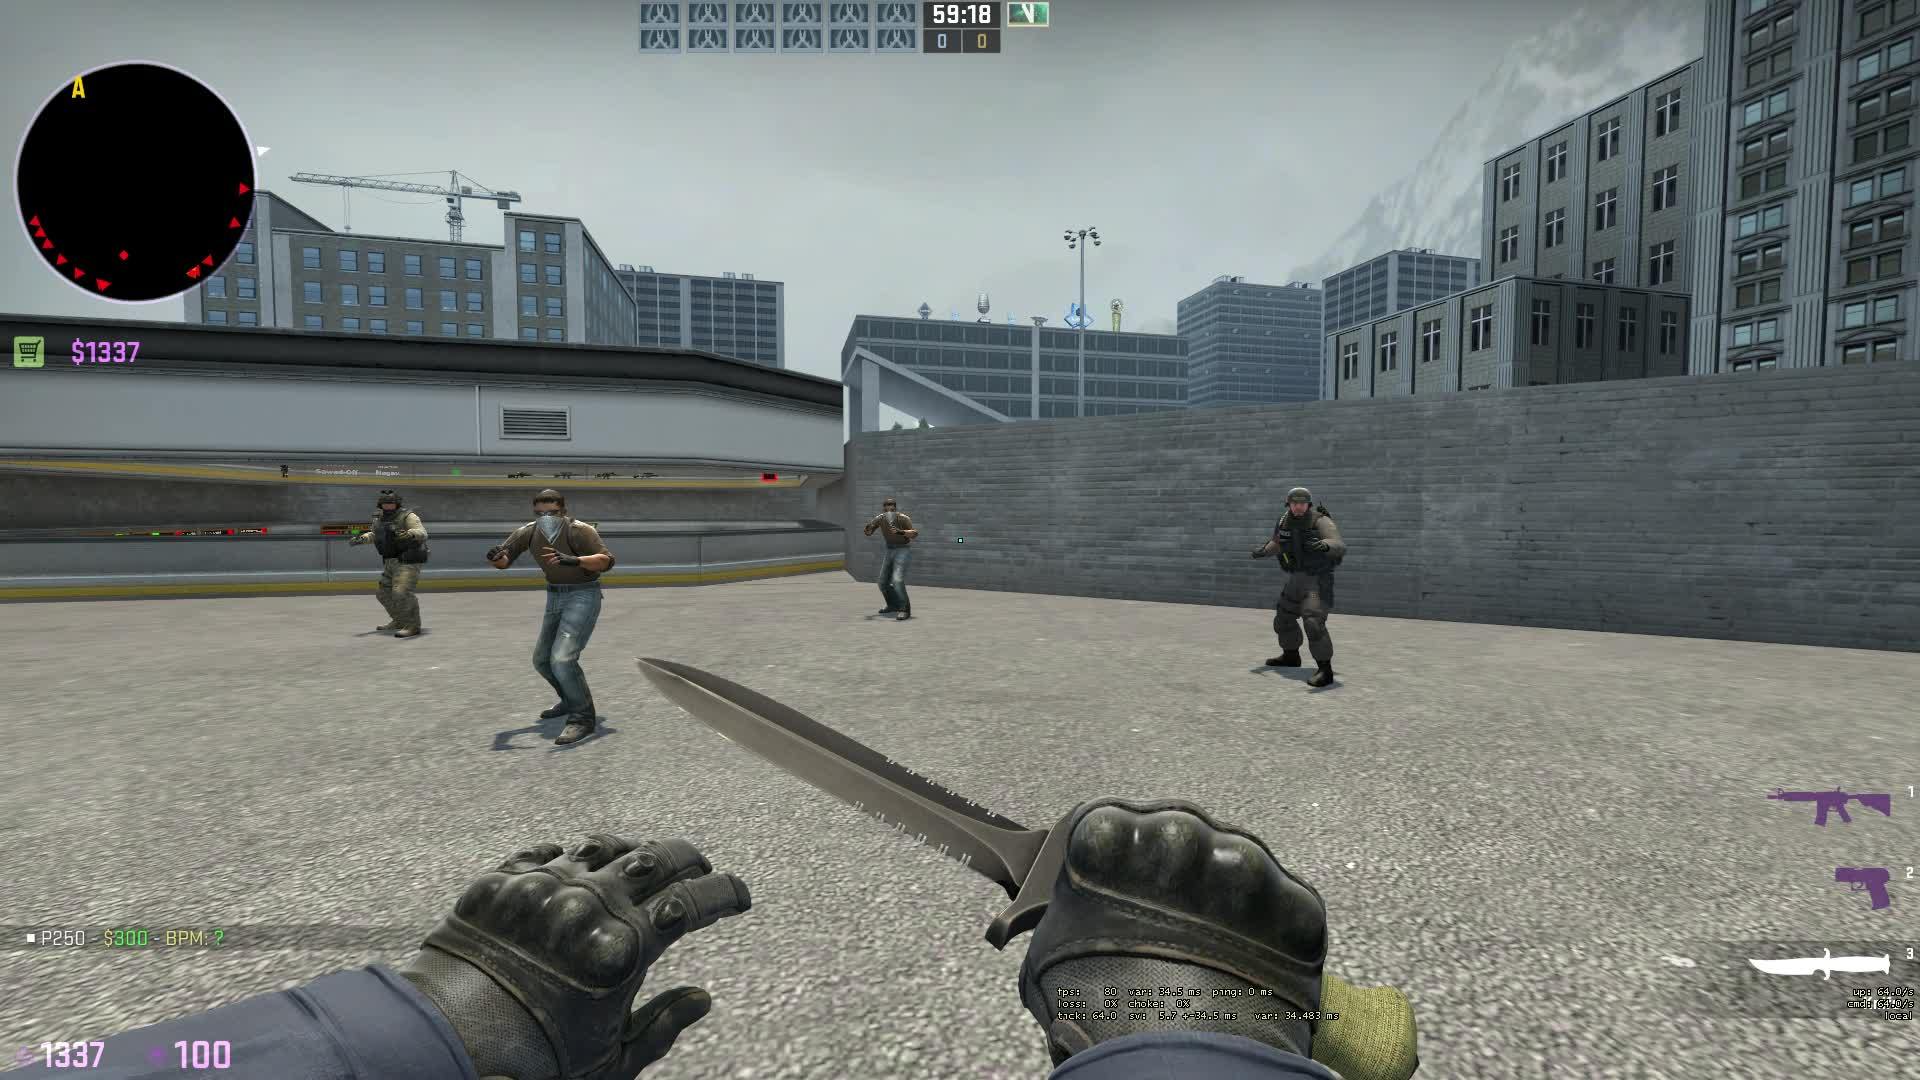 counterstrike, How does this even make sense? GIFs